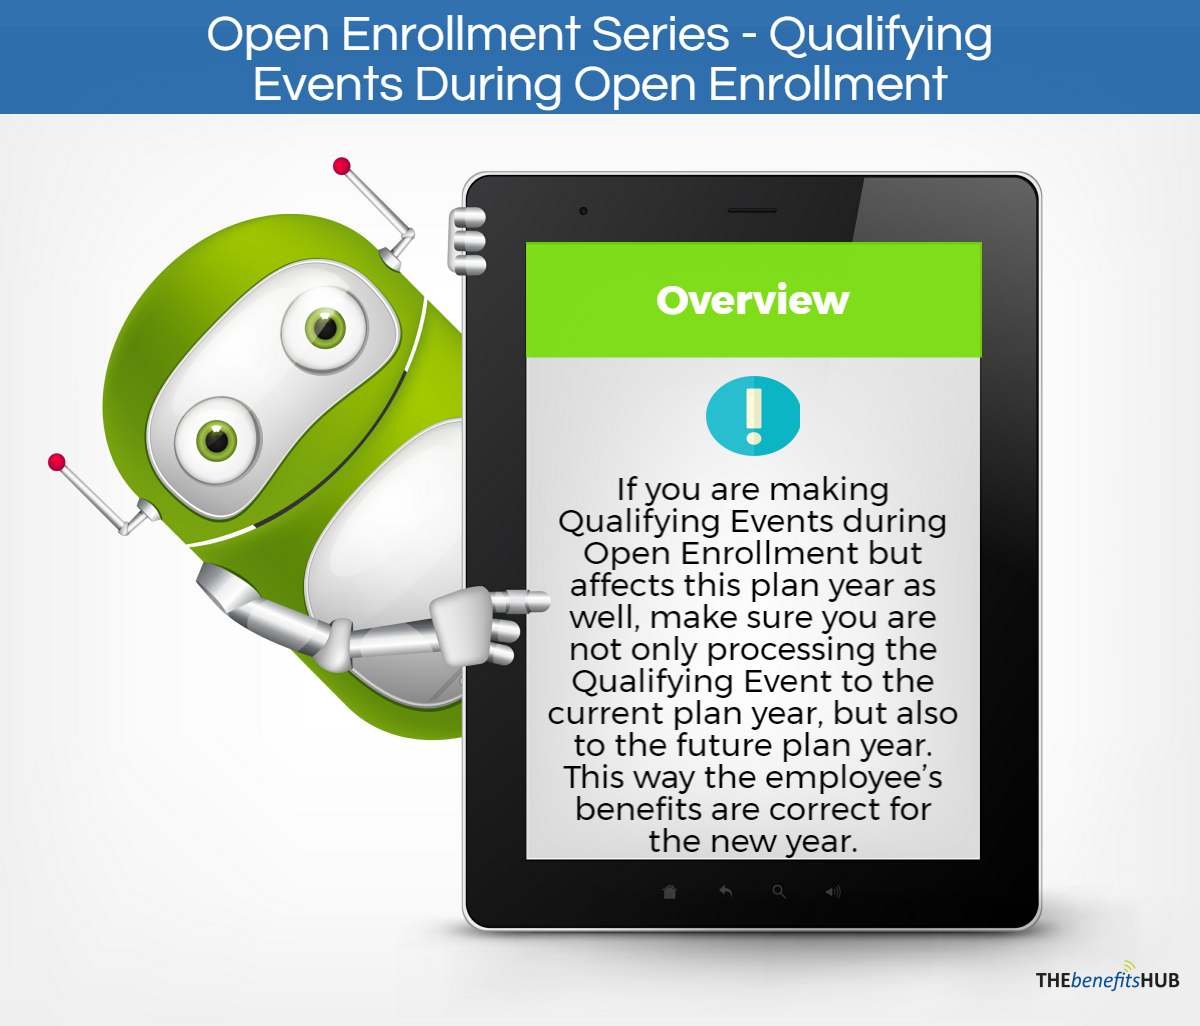 Have Qualifying Events During Open Enrollment With Images Open Enrollment Fun At Work Reminder